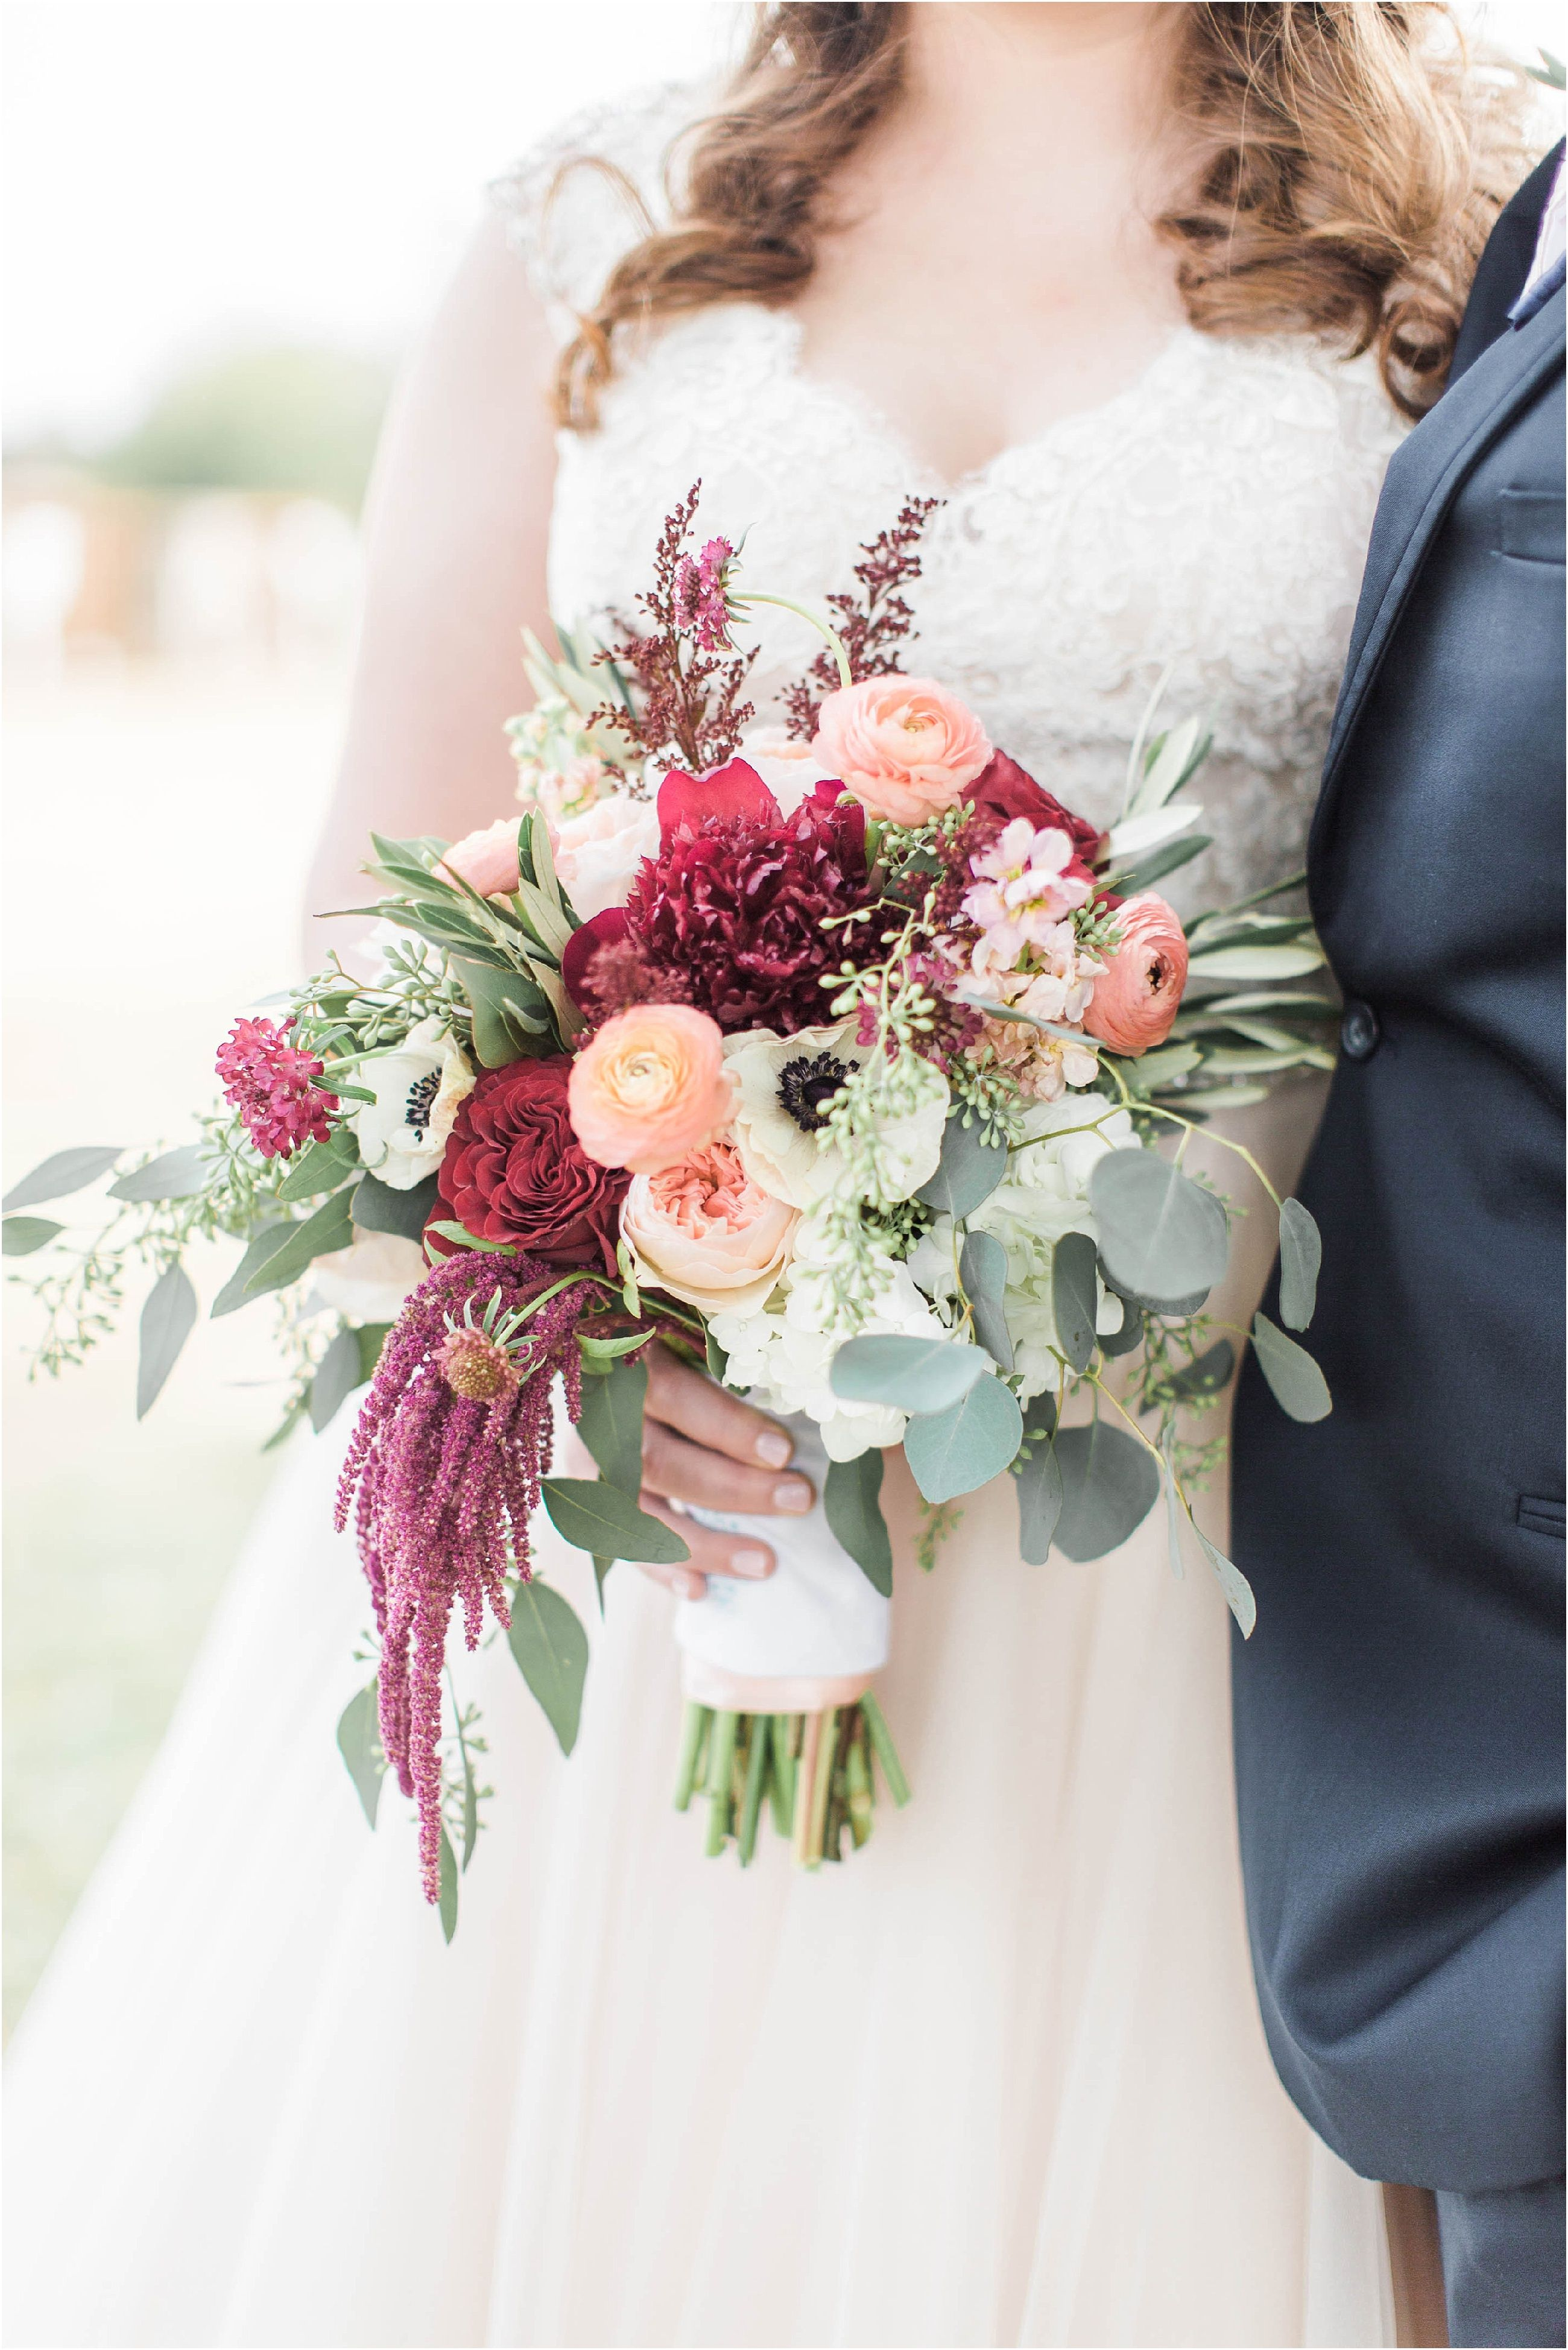 North Farm Wedding with Burgundy and Navy Details